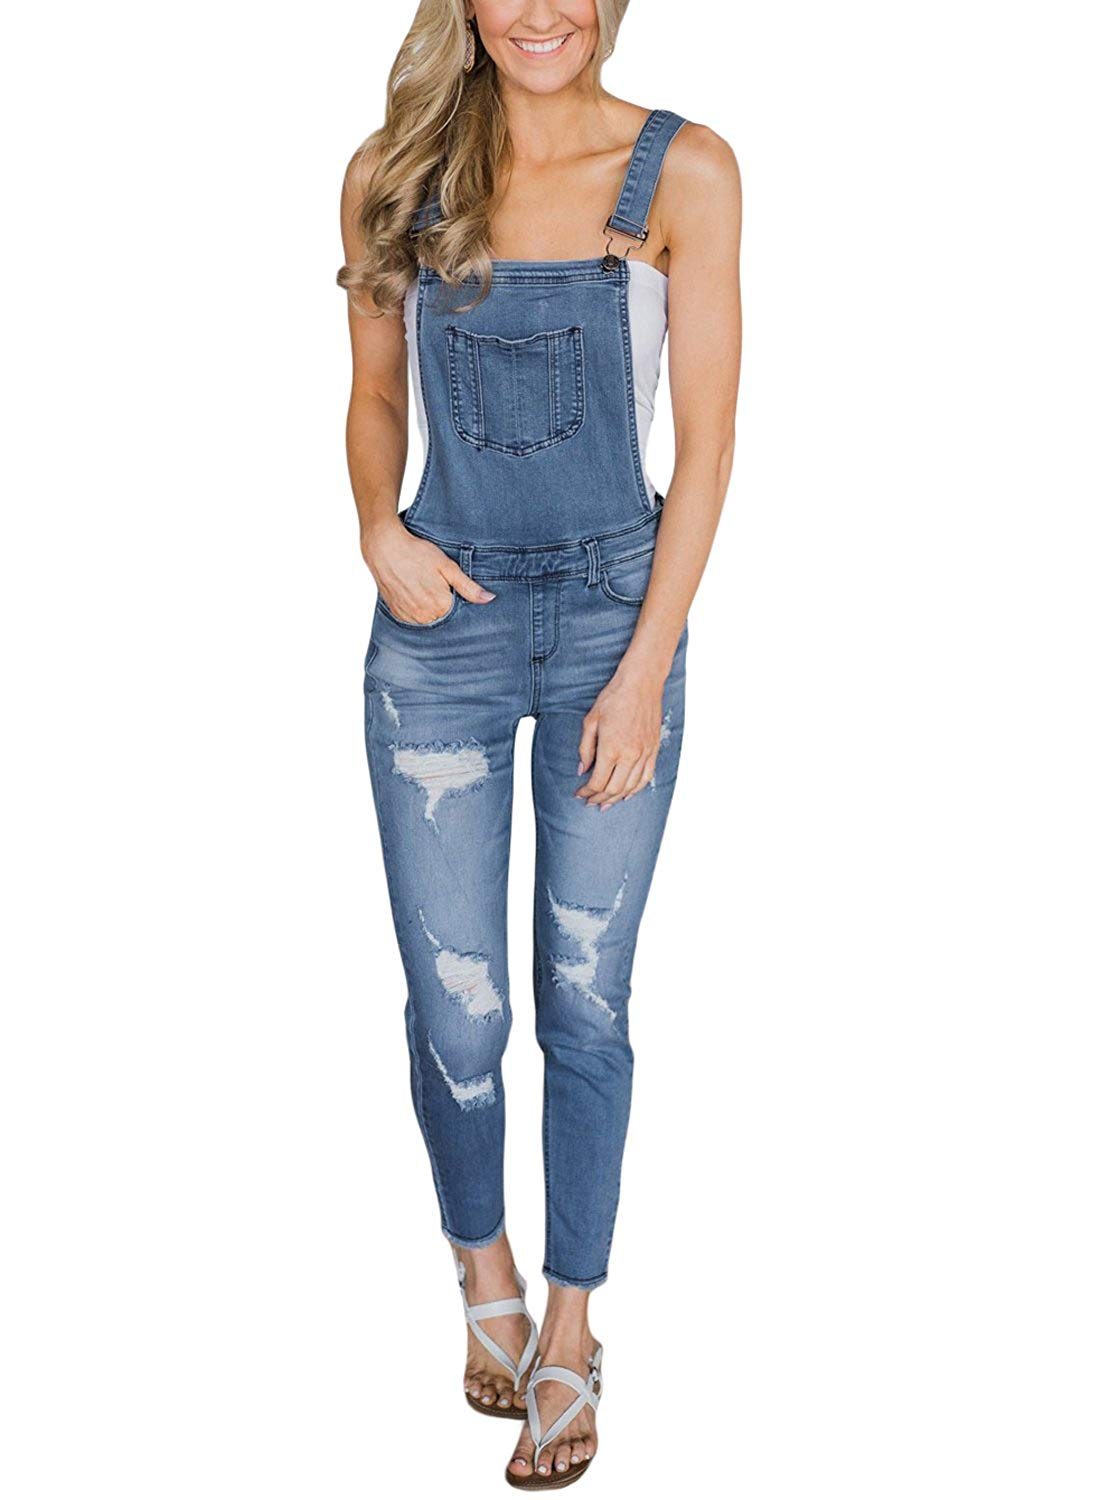 9db68a5e5dcd Get Quotations · GOSOPIN Women Juniors Fitted Distressed Denim Jeans  Stretch Overalls Jumpsuits